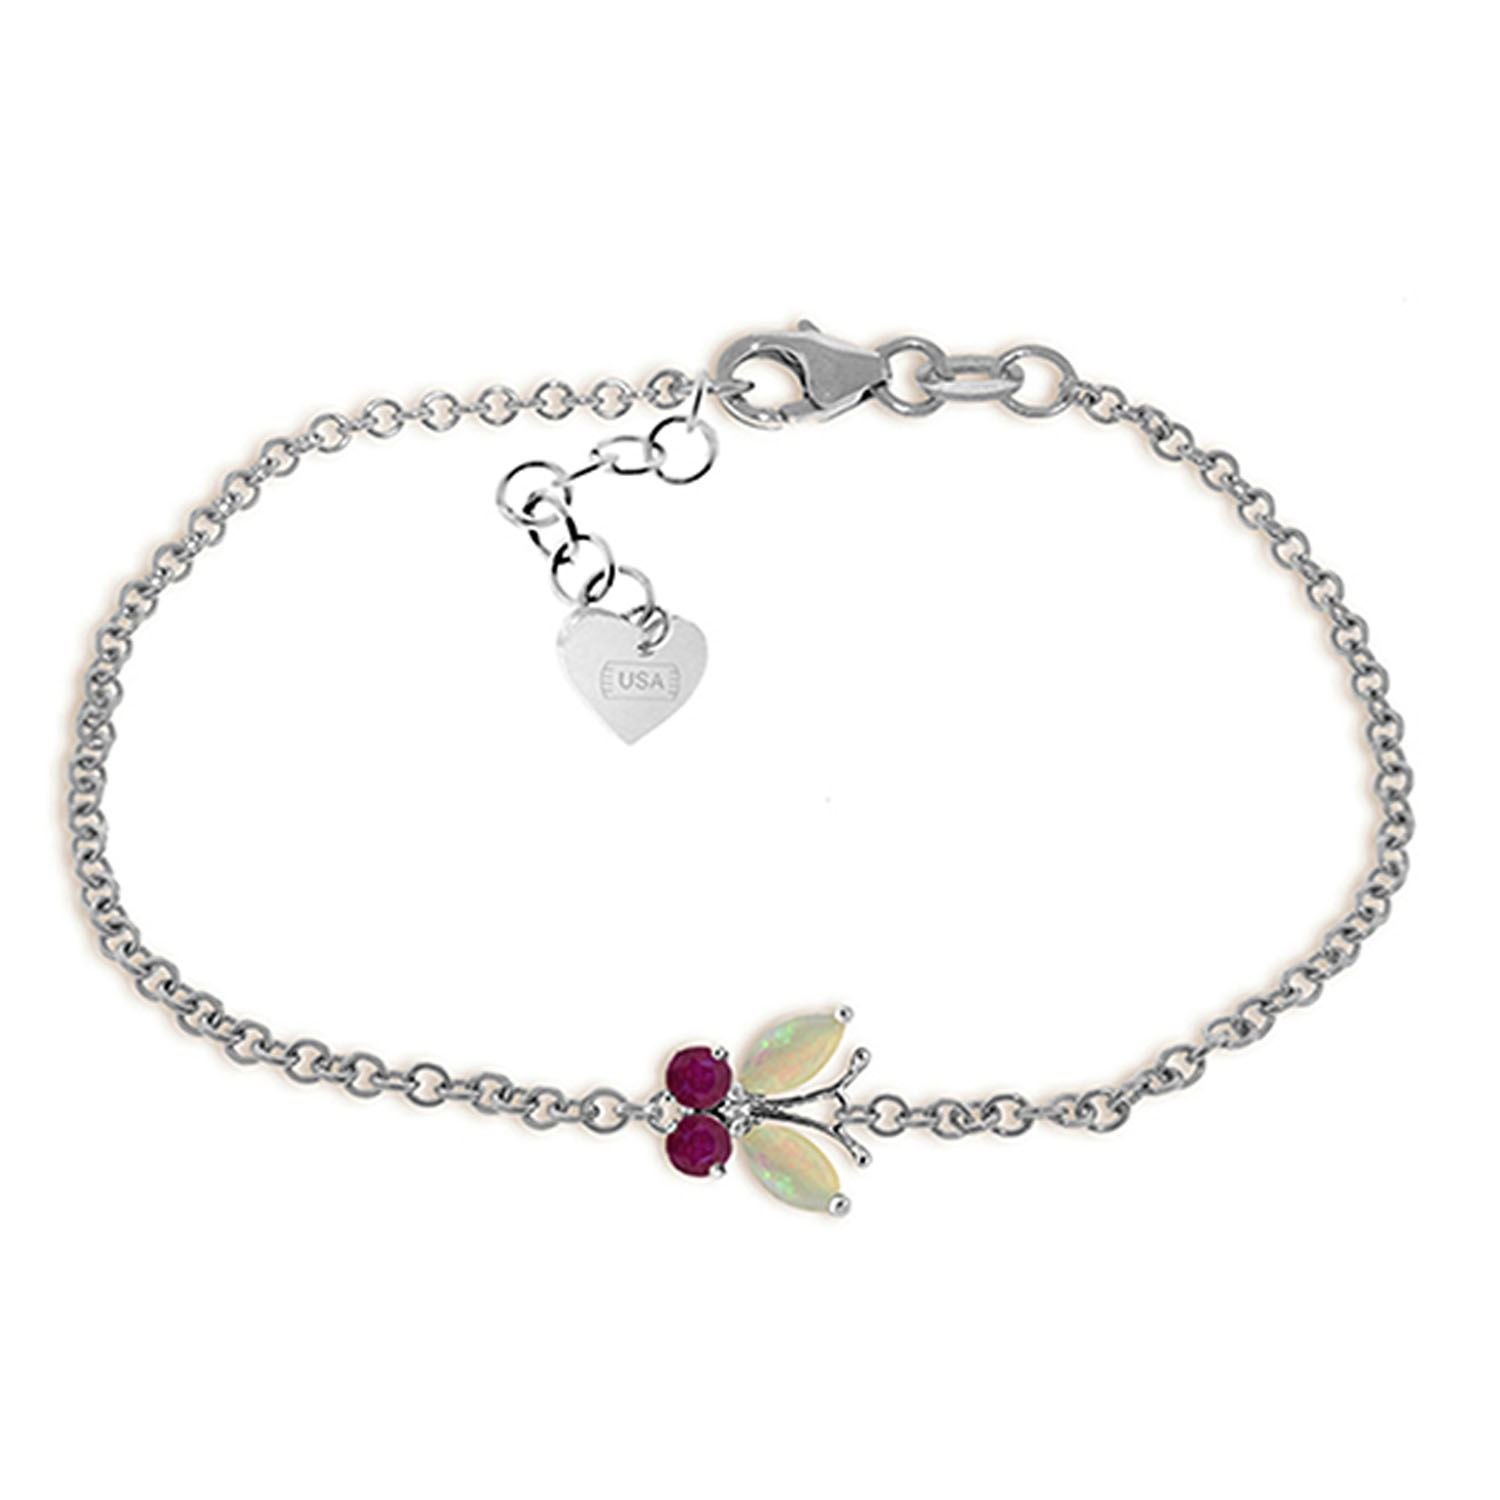 ALARRI 0.6 Carat 14K Solid White Gold Coming Down Love Opal Ruby Bracelet Size 8 Inch Length